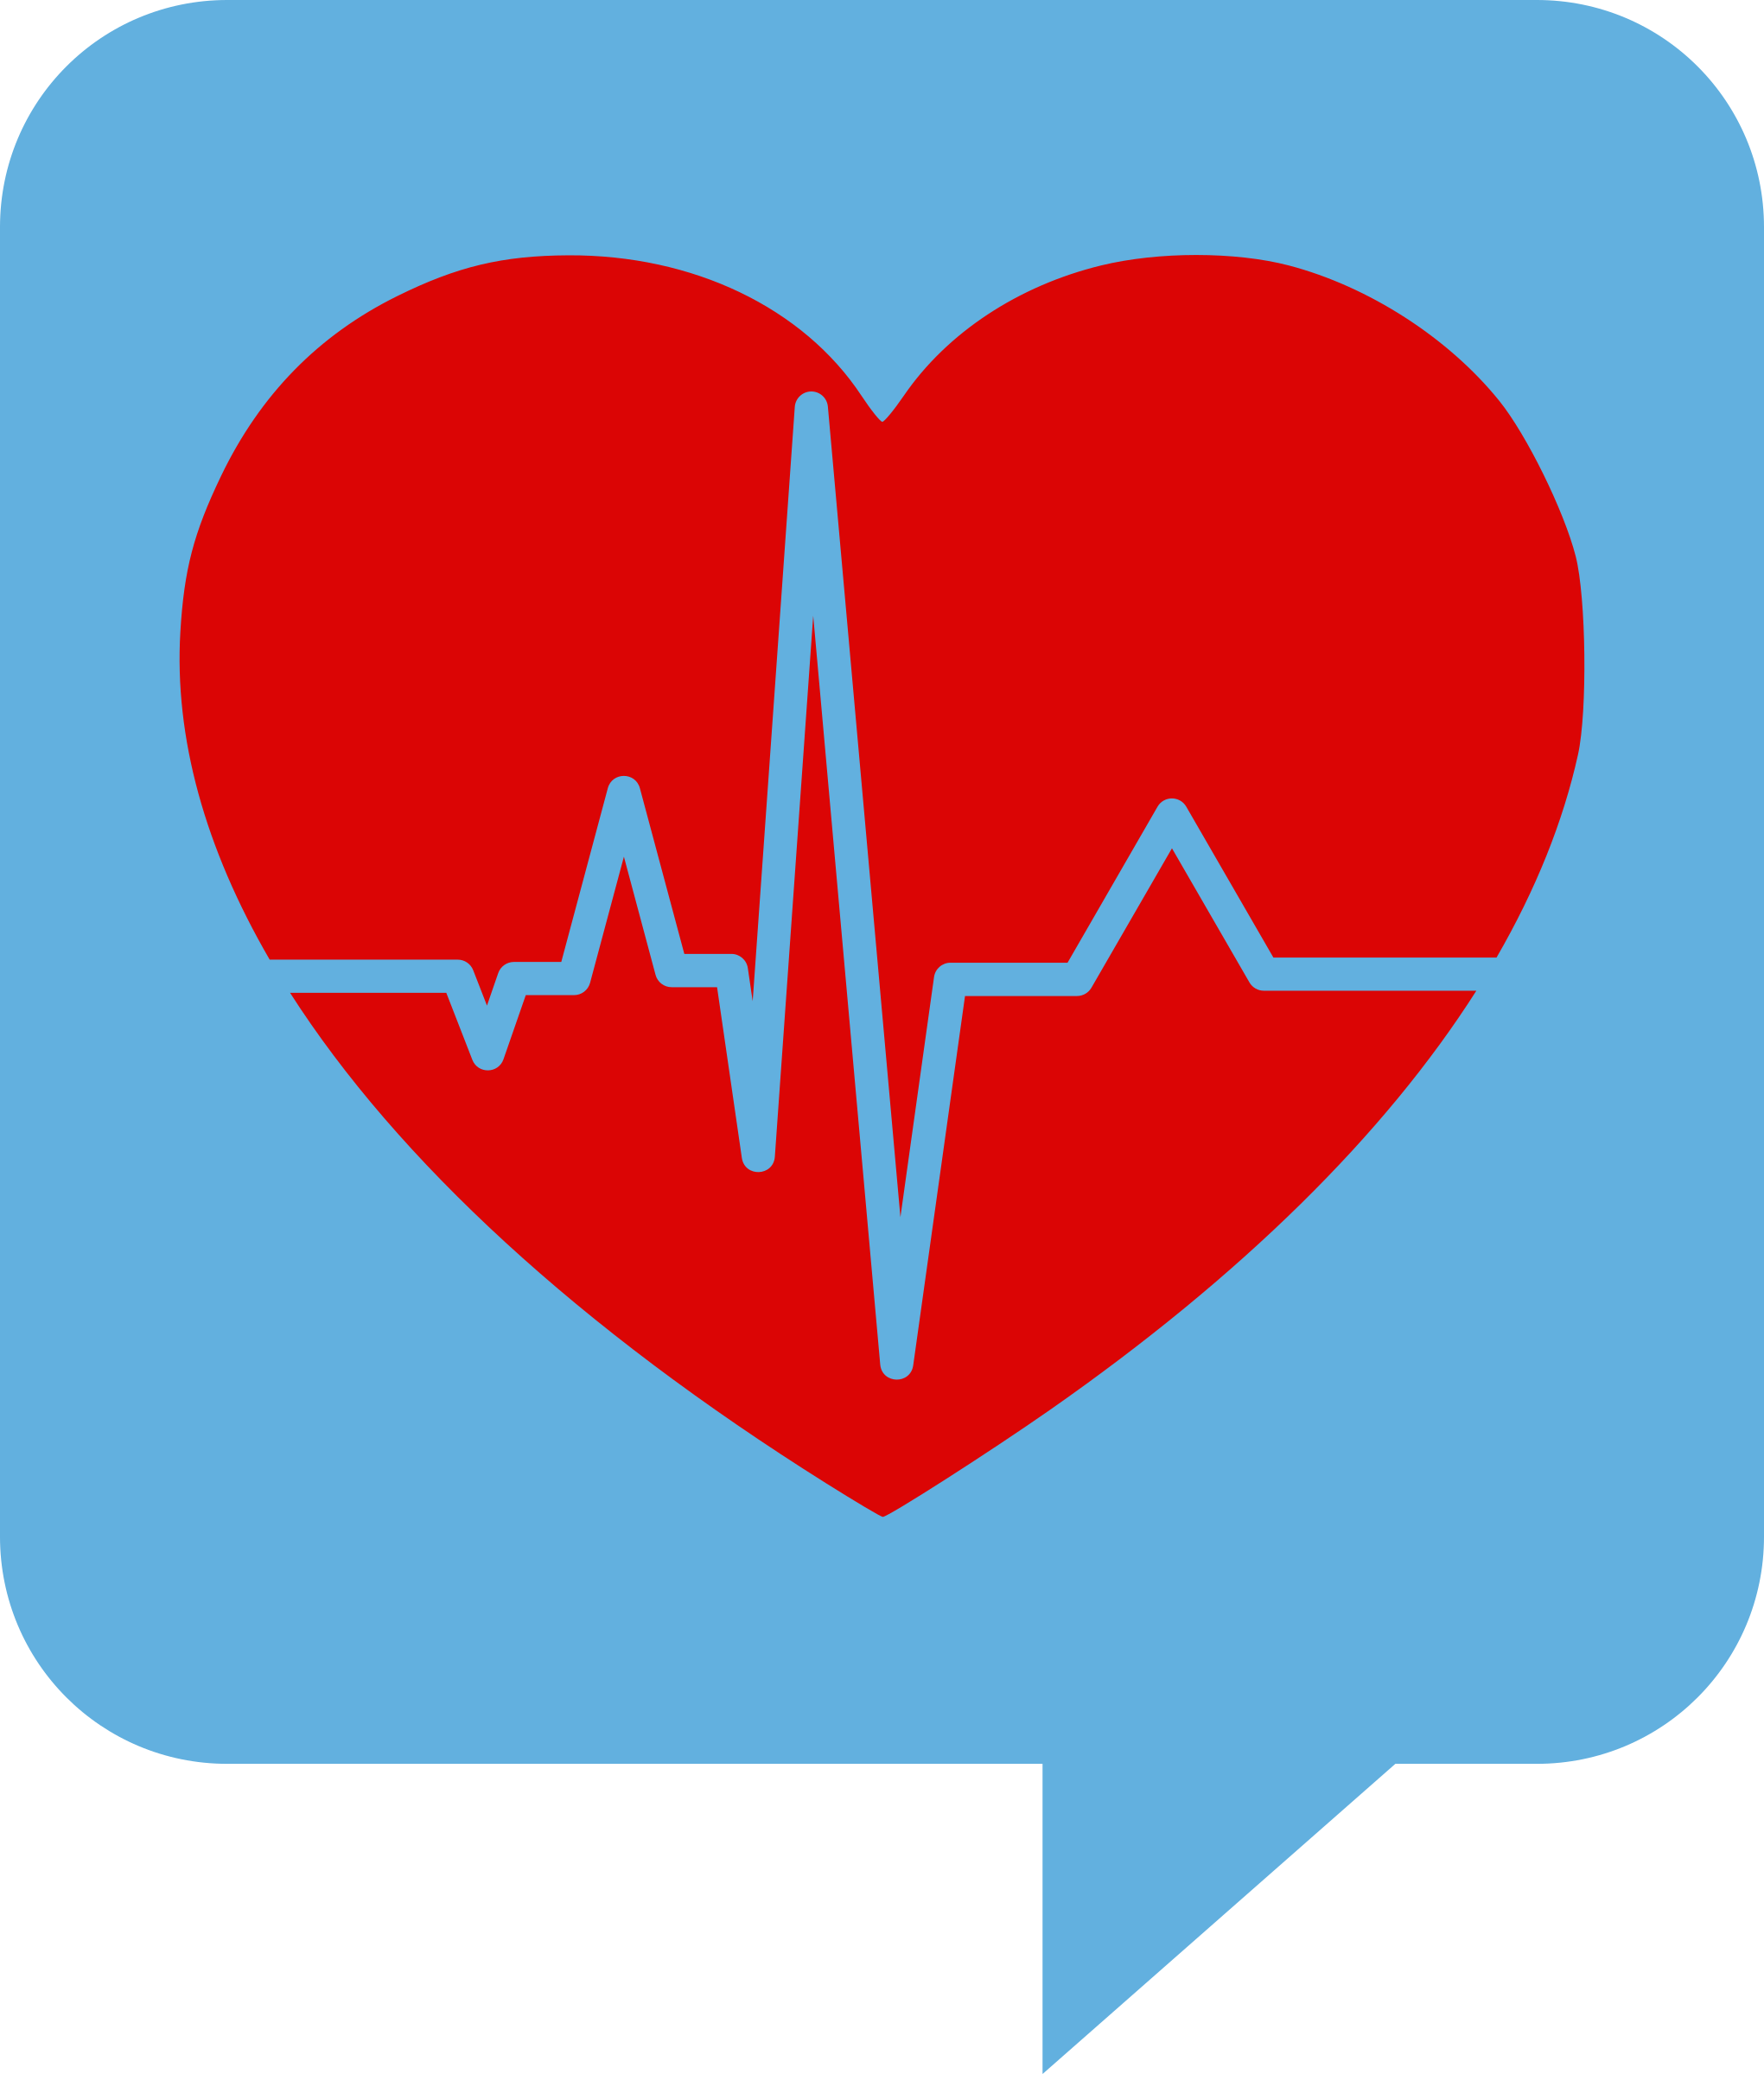 Heartbeat clipart health symbol.  collection of transparent